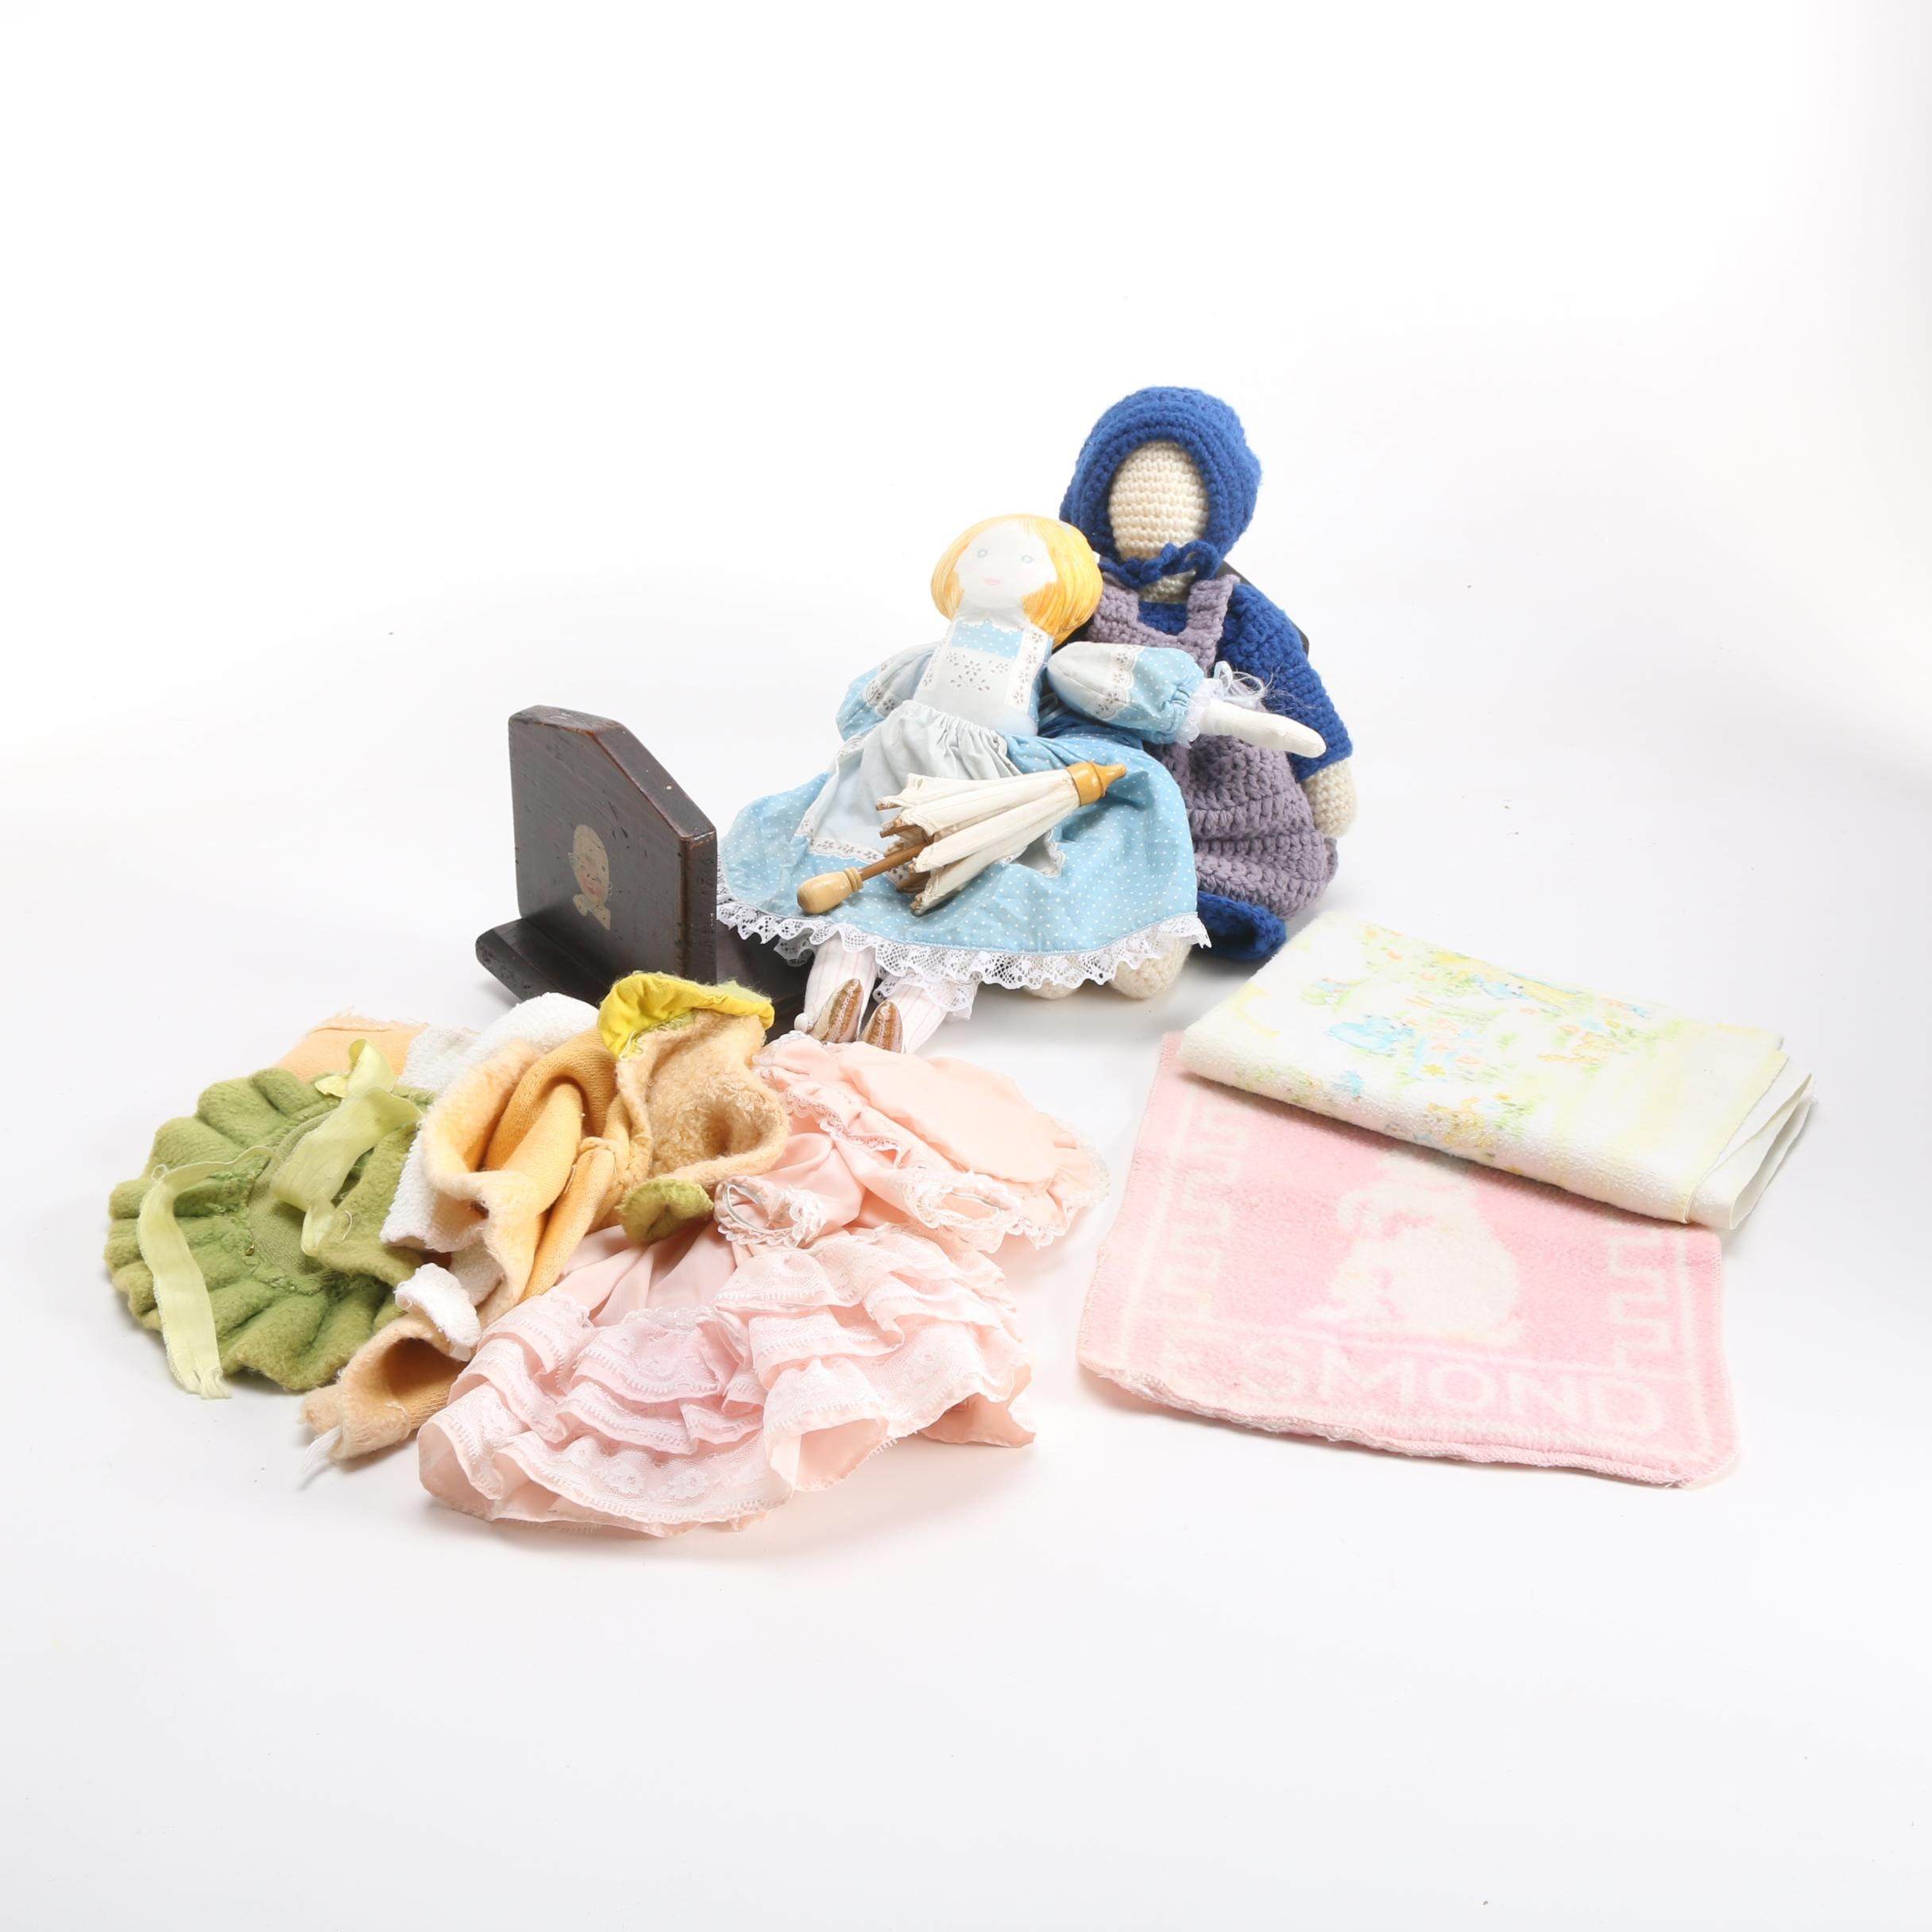 Vintage Inspired Dolls and Accessories